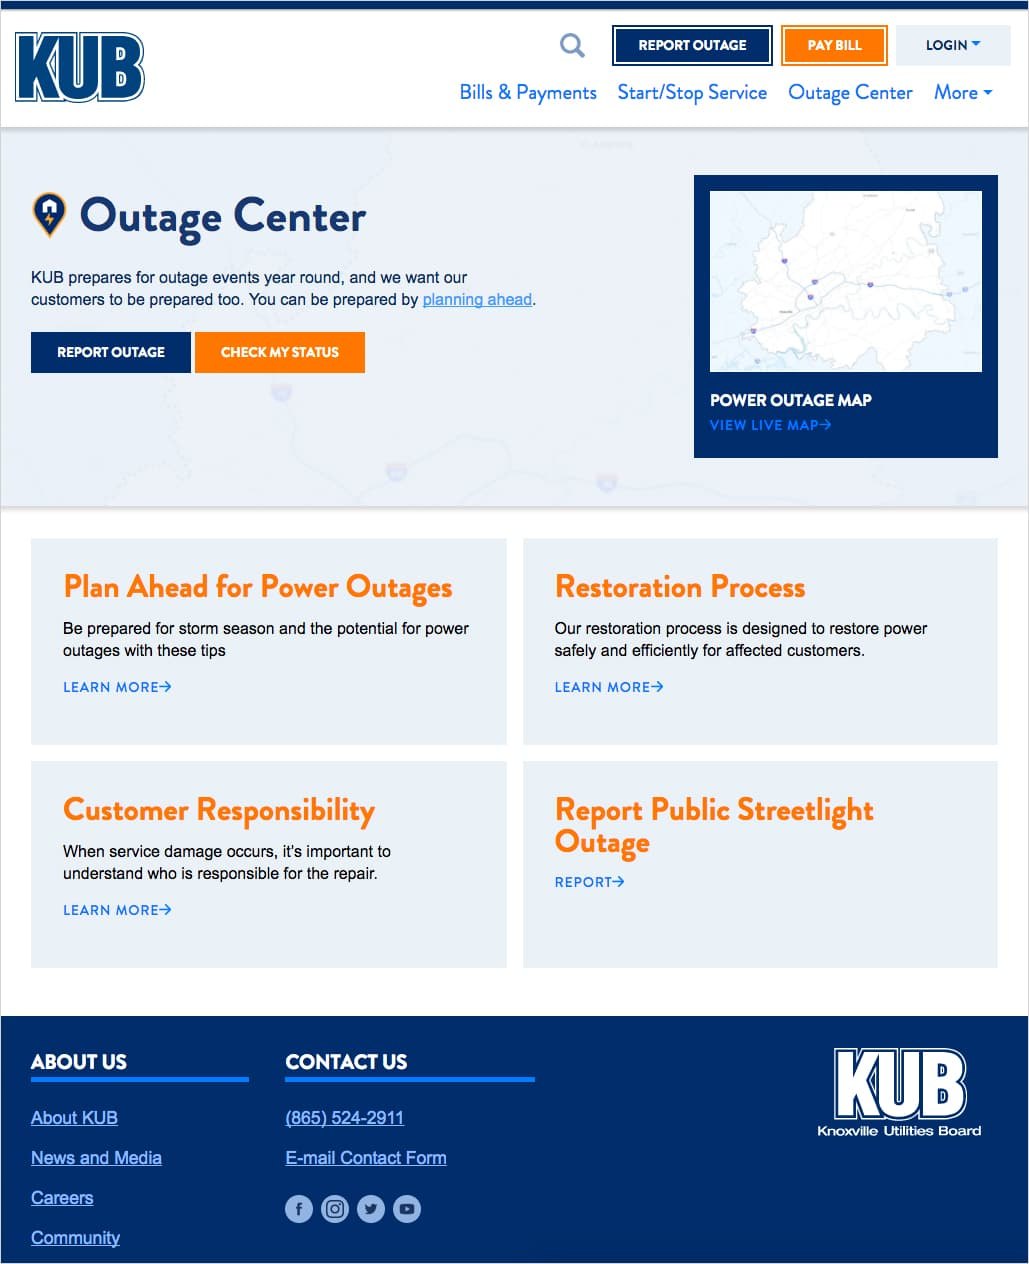 The Outage Center page